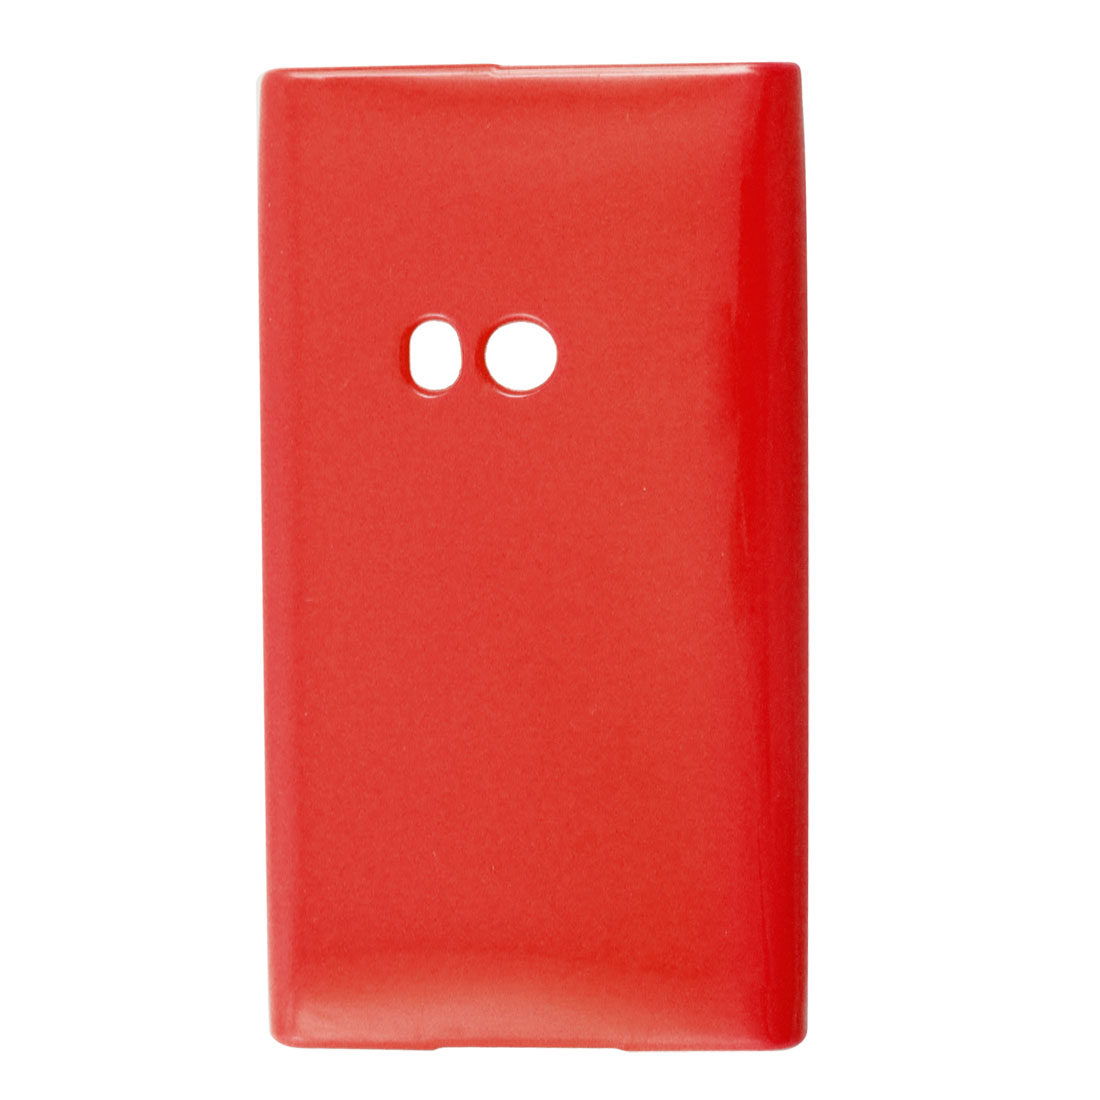 Red Soft Plastic Cover Protector Shell for Nokia N9